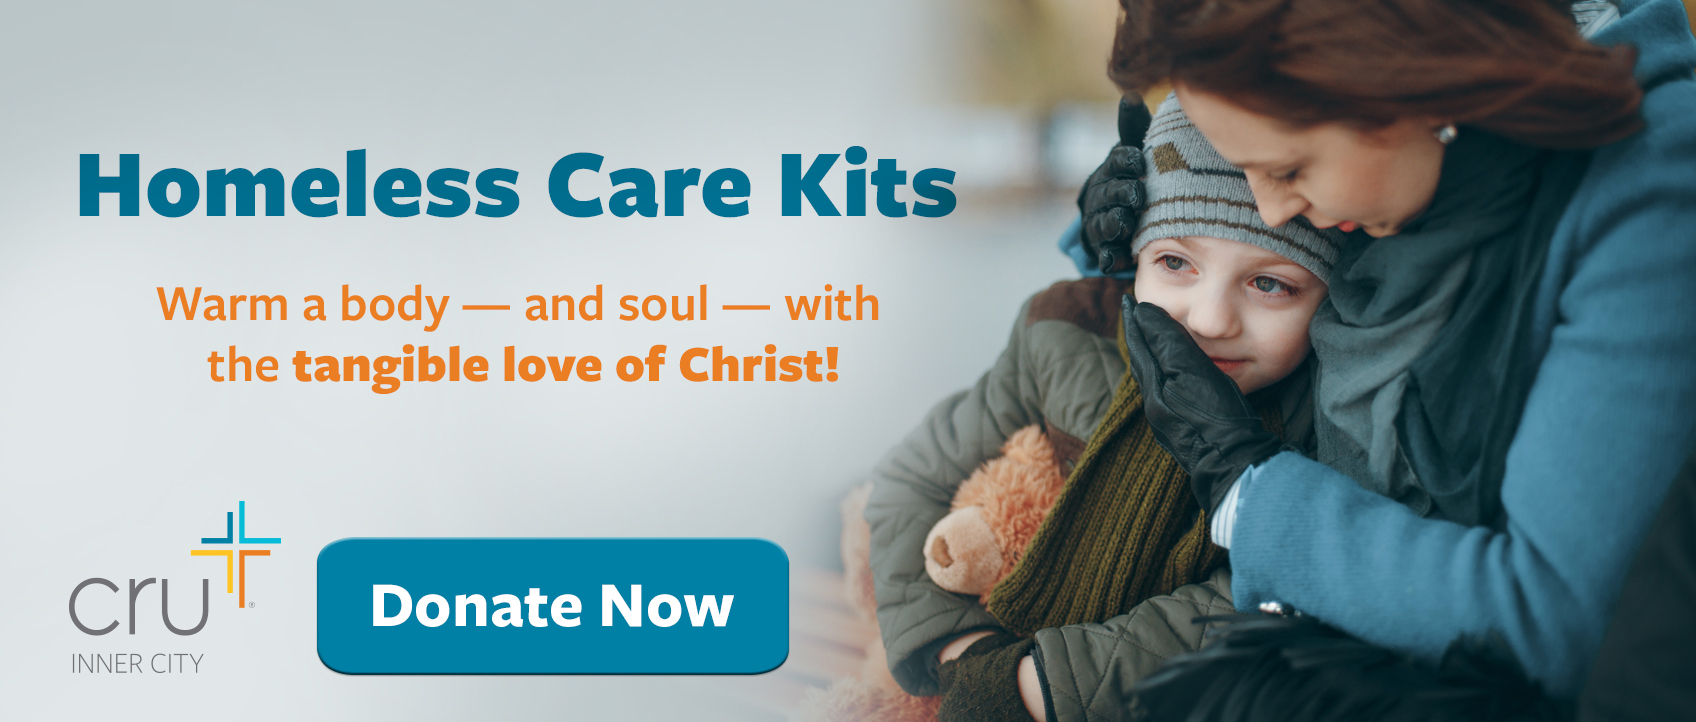 Give to Homeless Care Kits